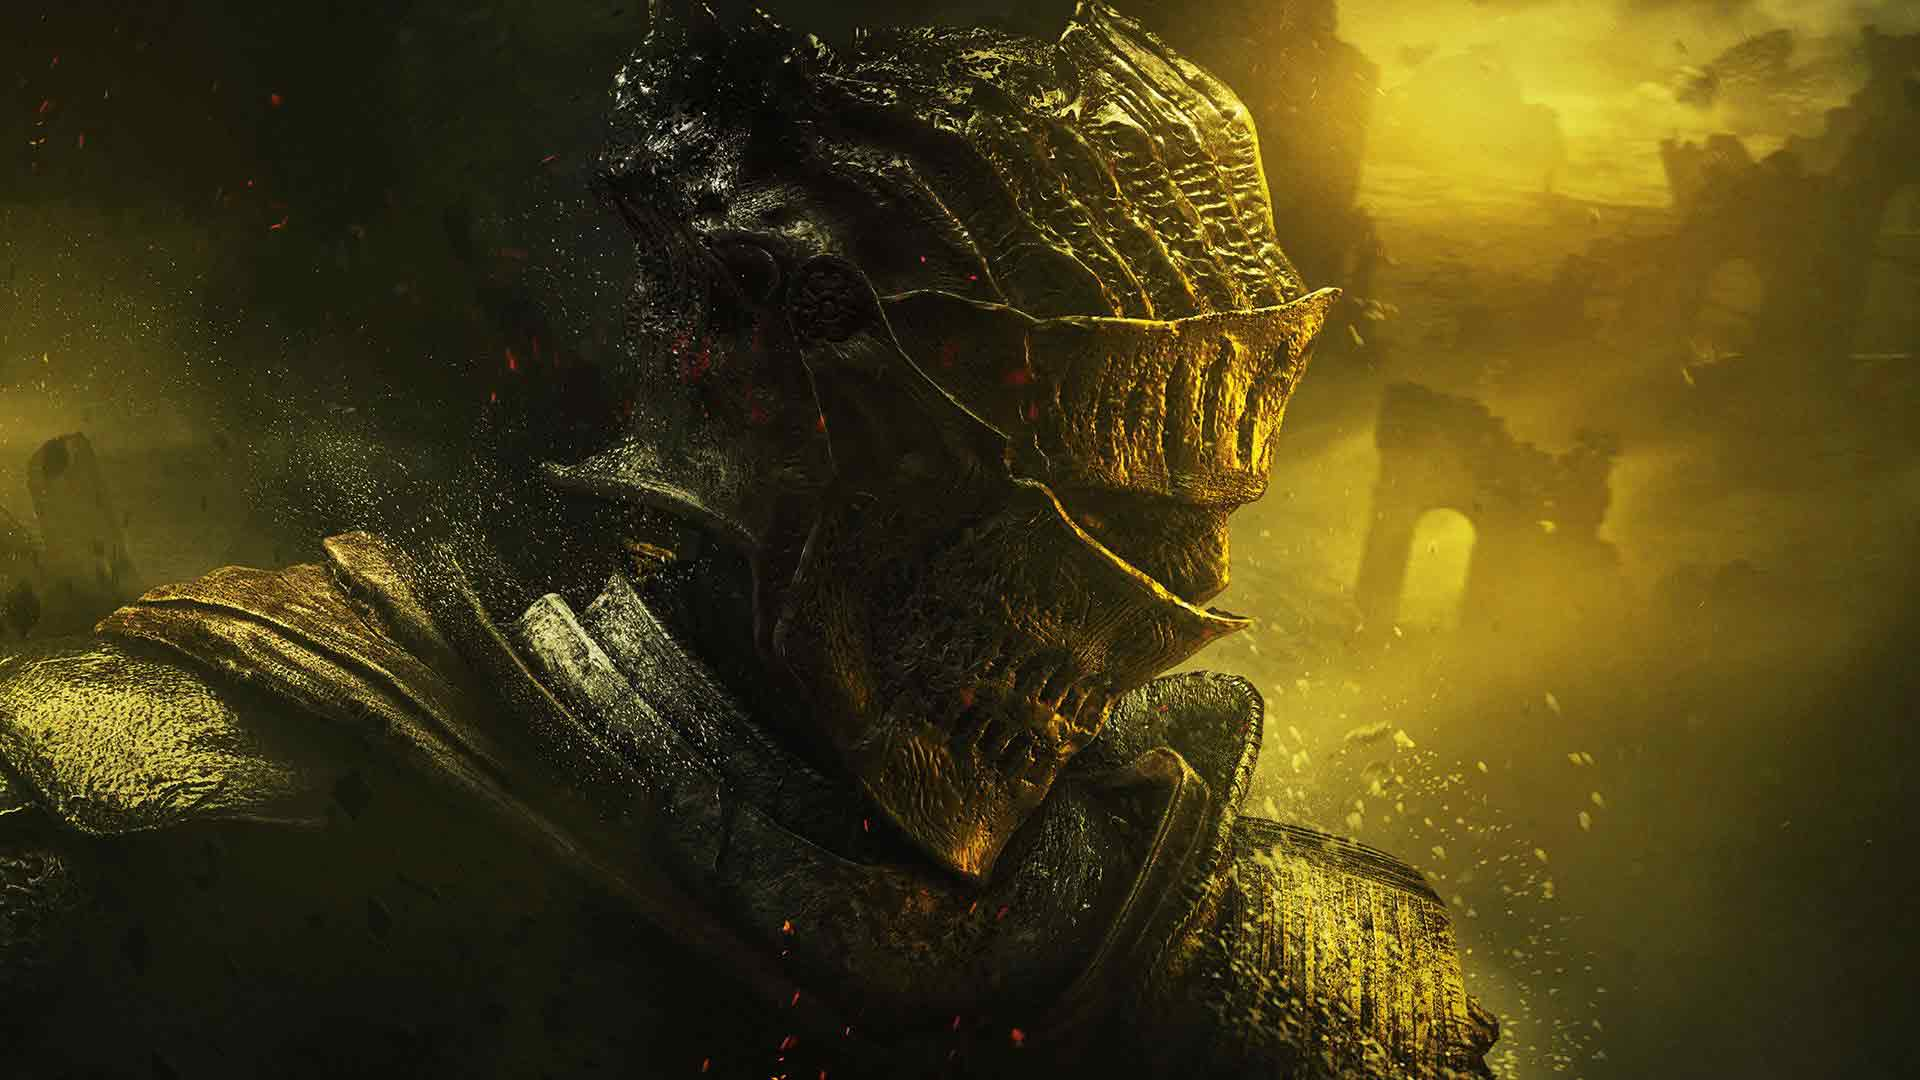 Dark Souls Trilogy , Dark Souls , From Software , Bandai Namco , Gamescom 2018 , تاریخ انتشار بازی Dark Souls Trilogy , داستان بازی Dark Souls Trilogy